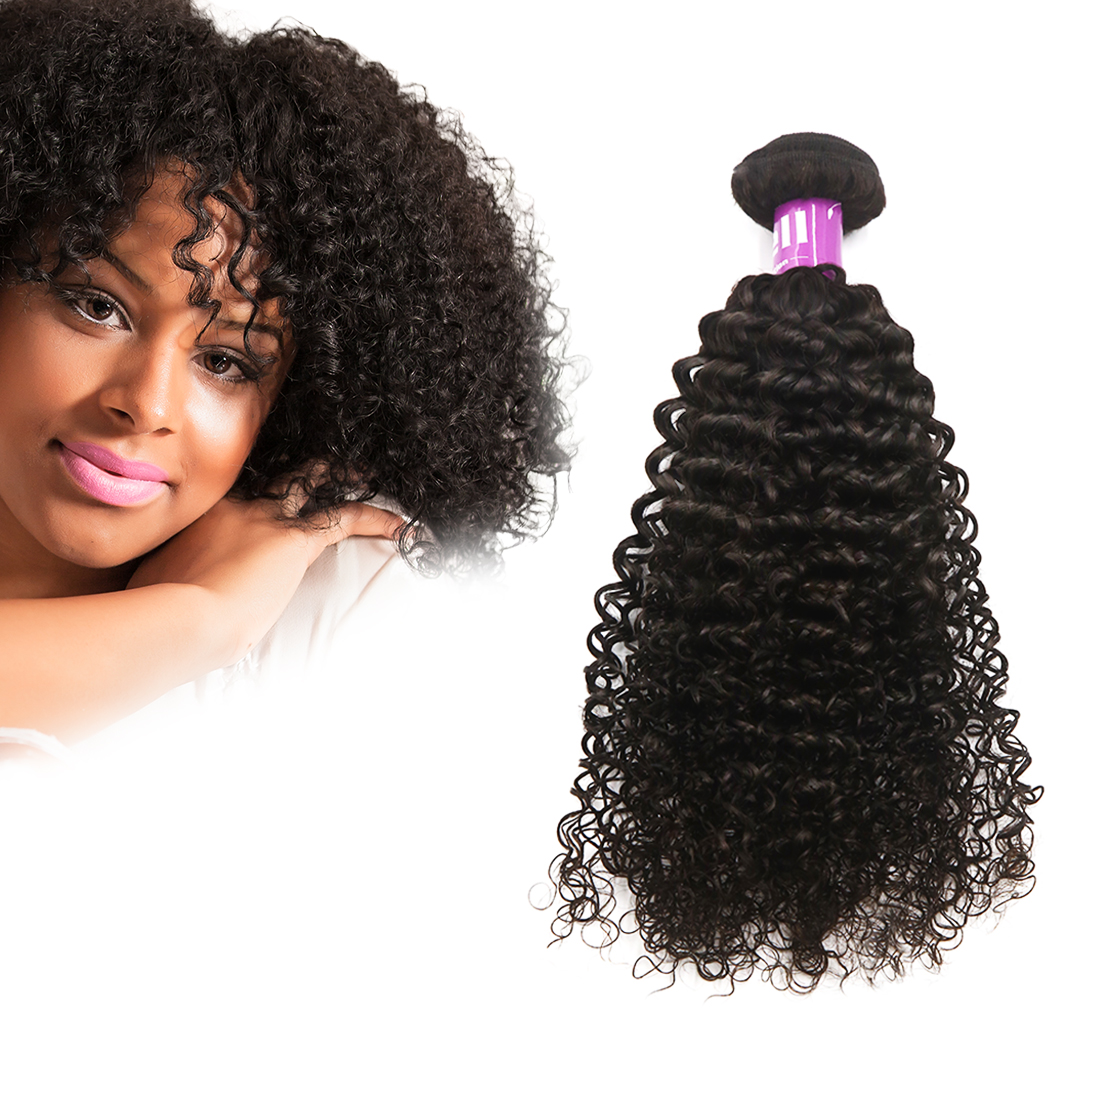 Peruvian Unprocessed Virgin Jerry Curly Human Hair Extensions Wave 20""